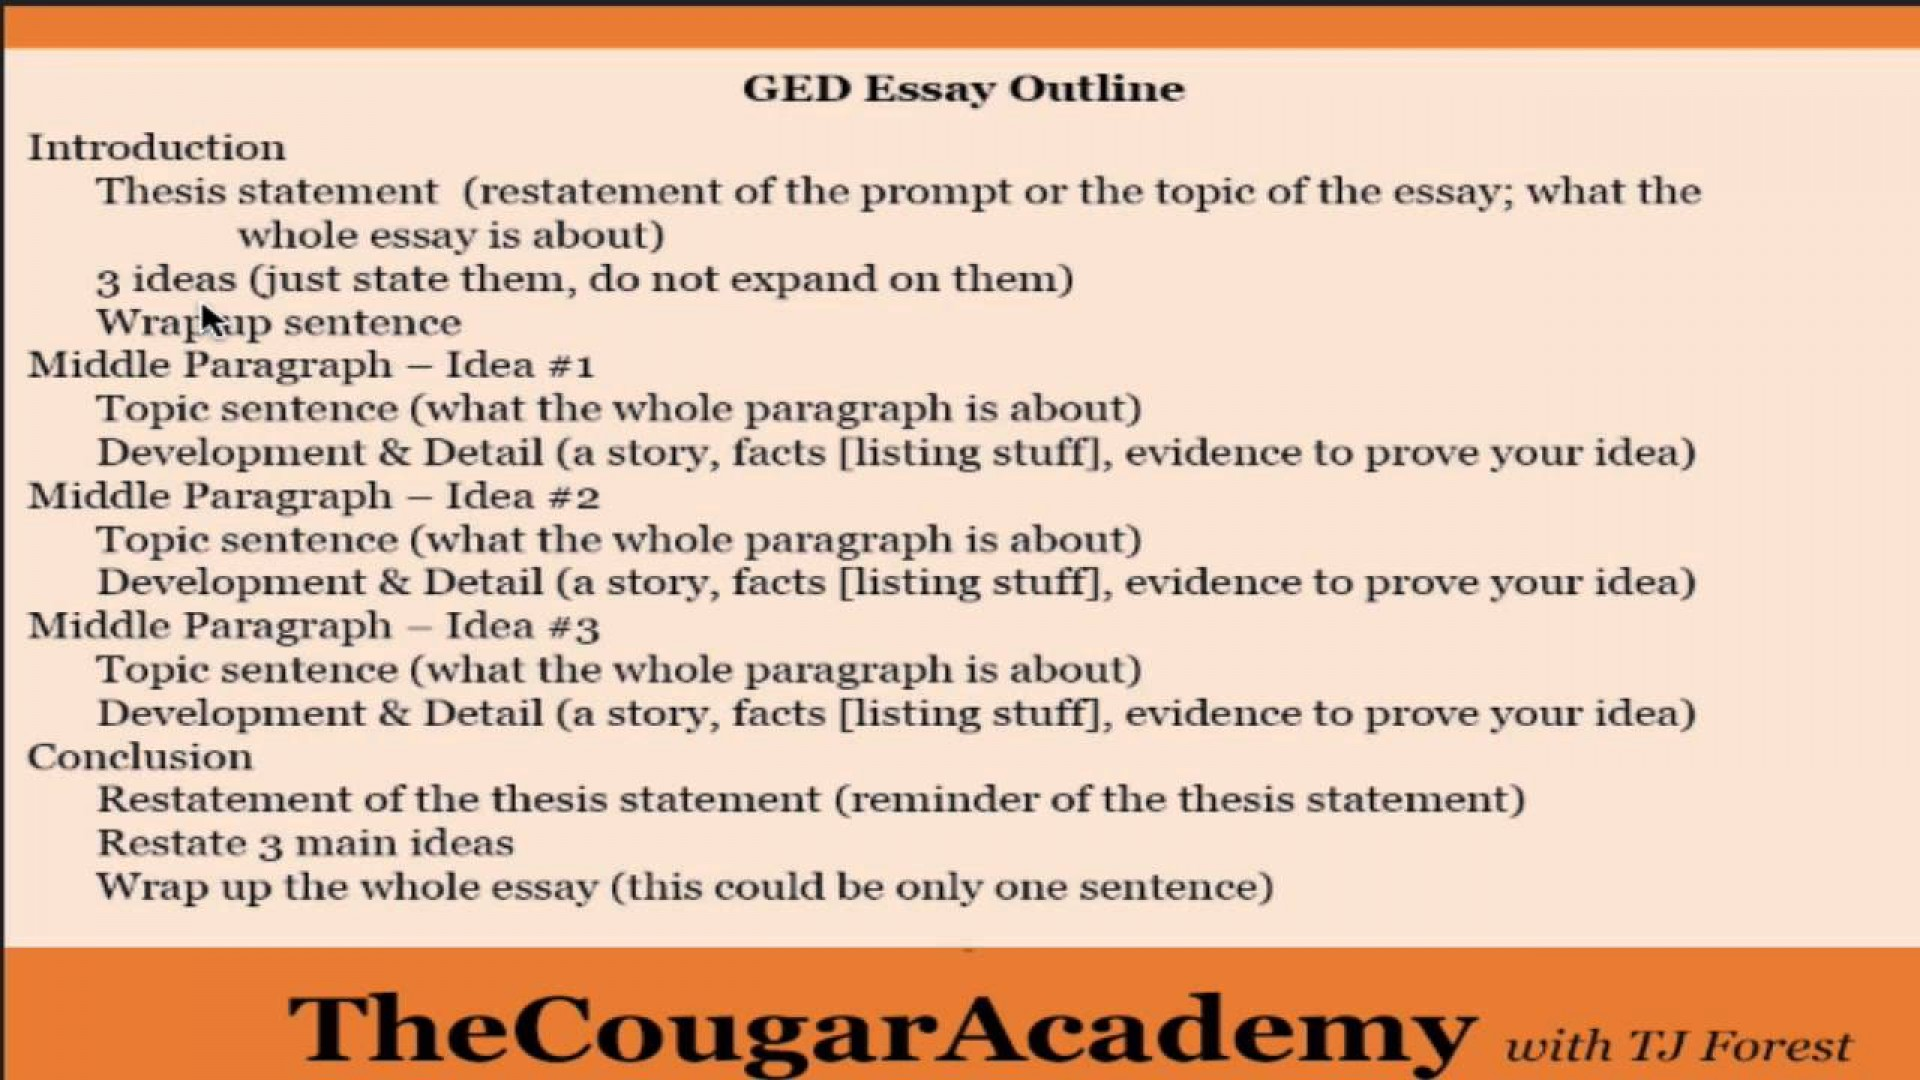 012 Maxresdefault Ged Essays Excellent Essay Examples 2016 1920